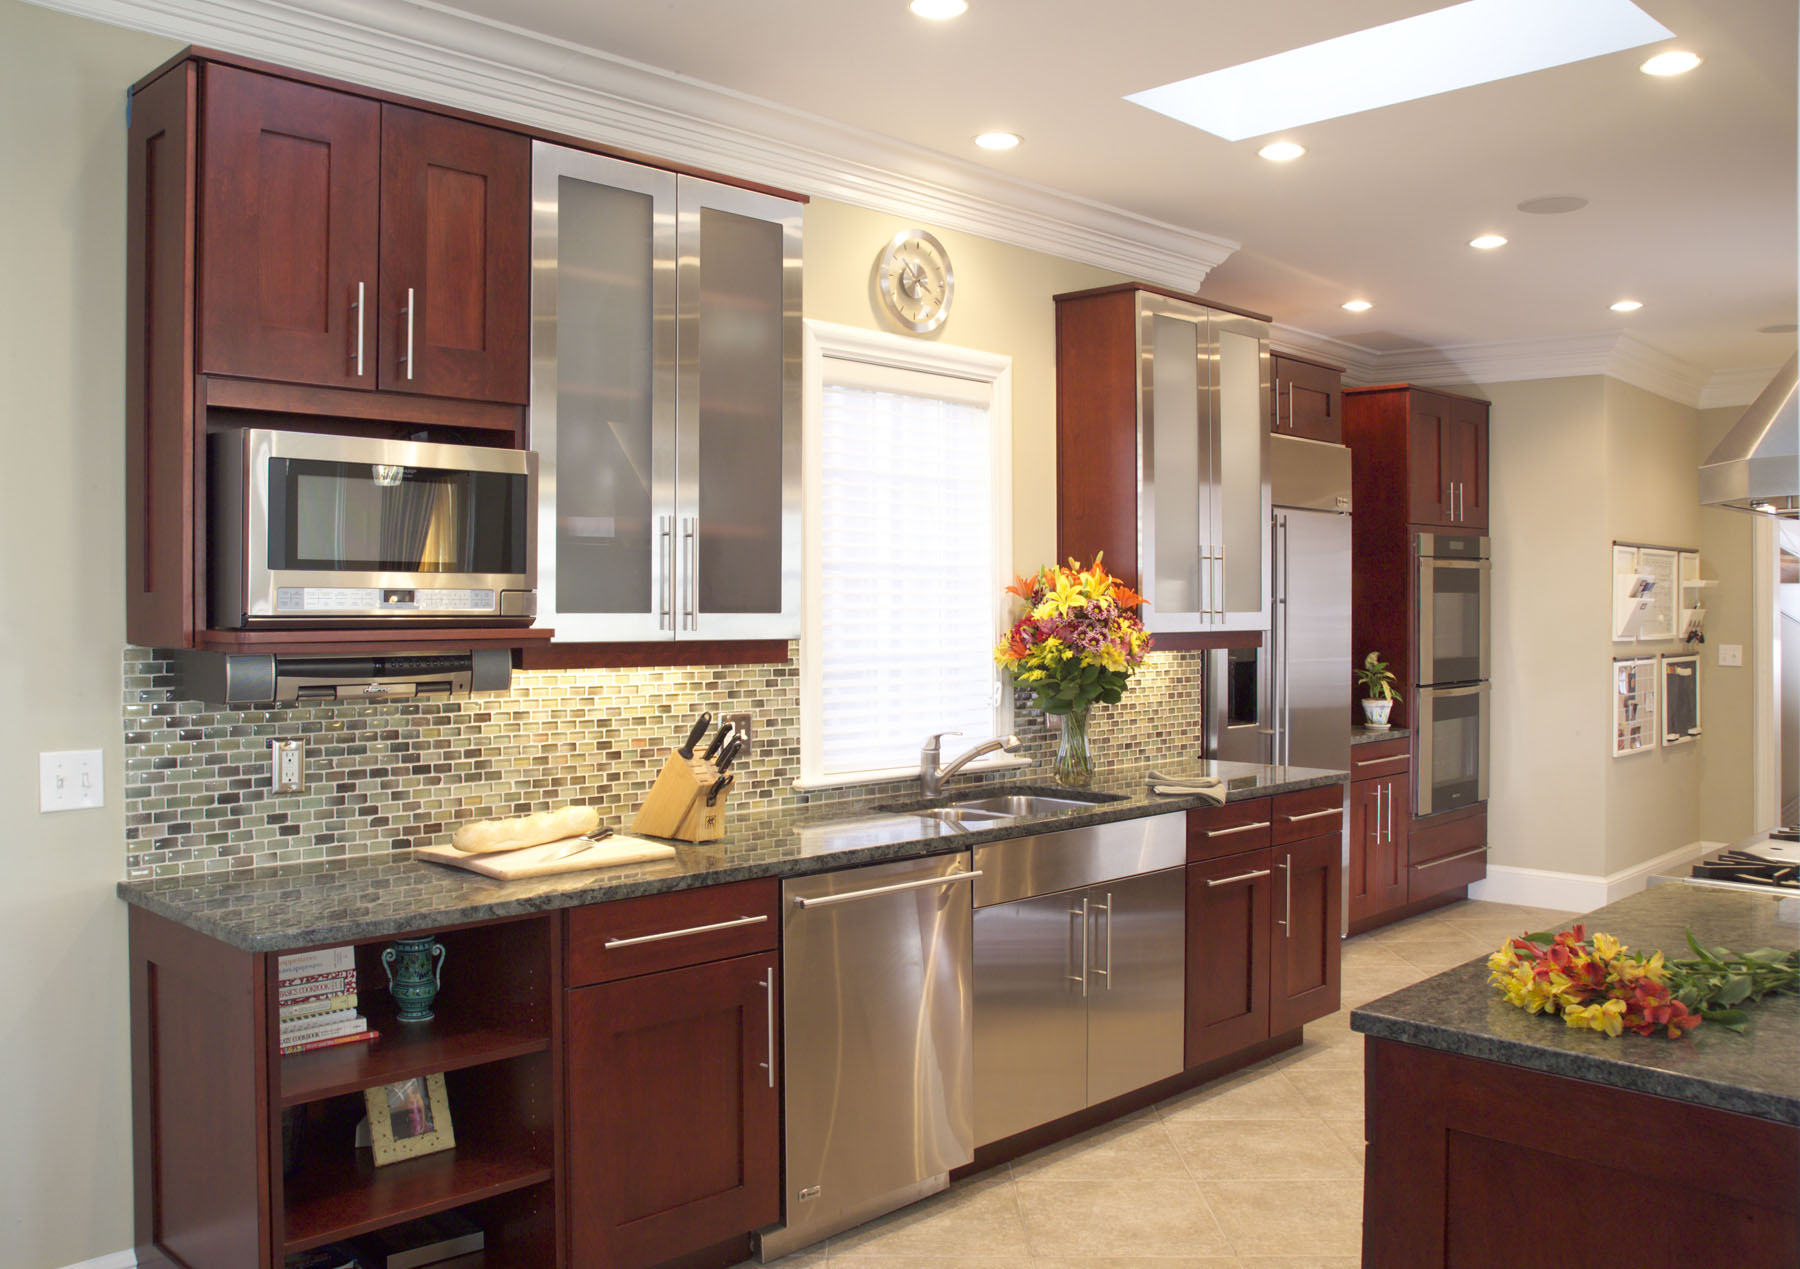 kitchen cabinets pittsburgh pa pittsburgh kitchen cabinets image to u 6324